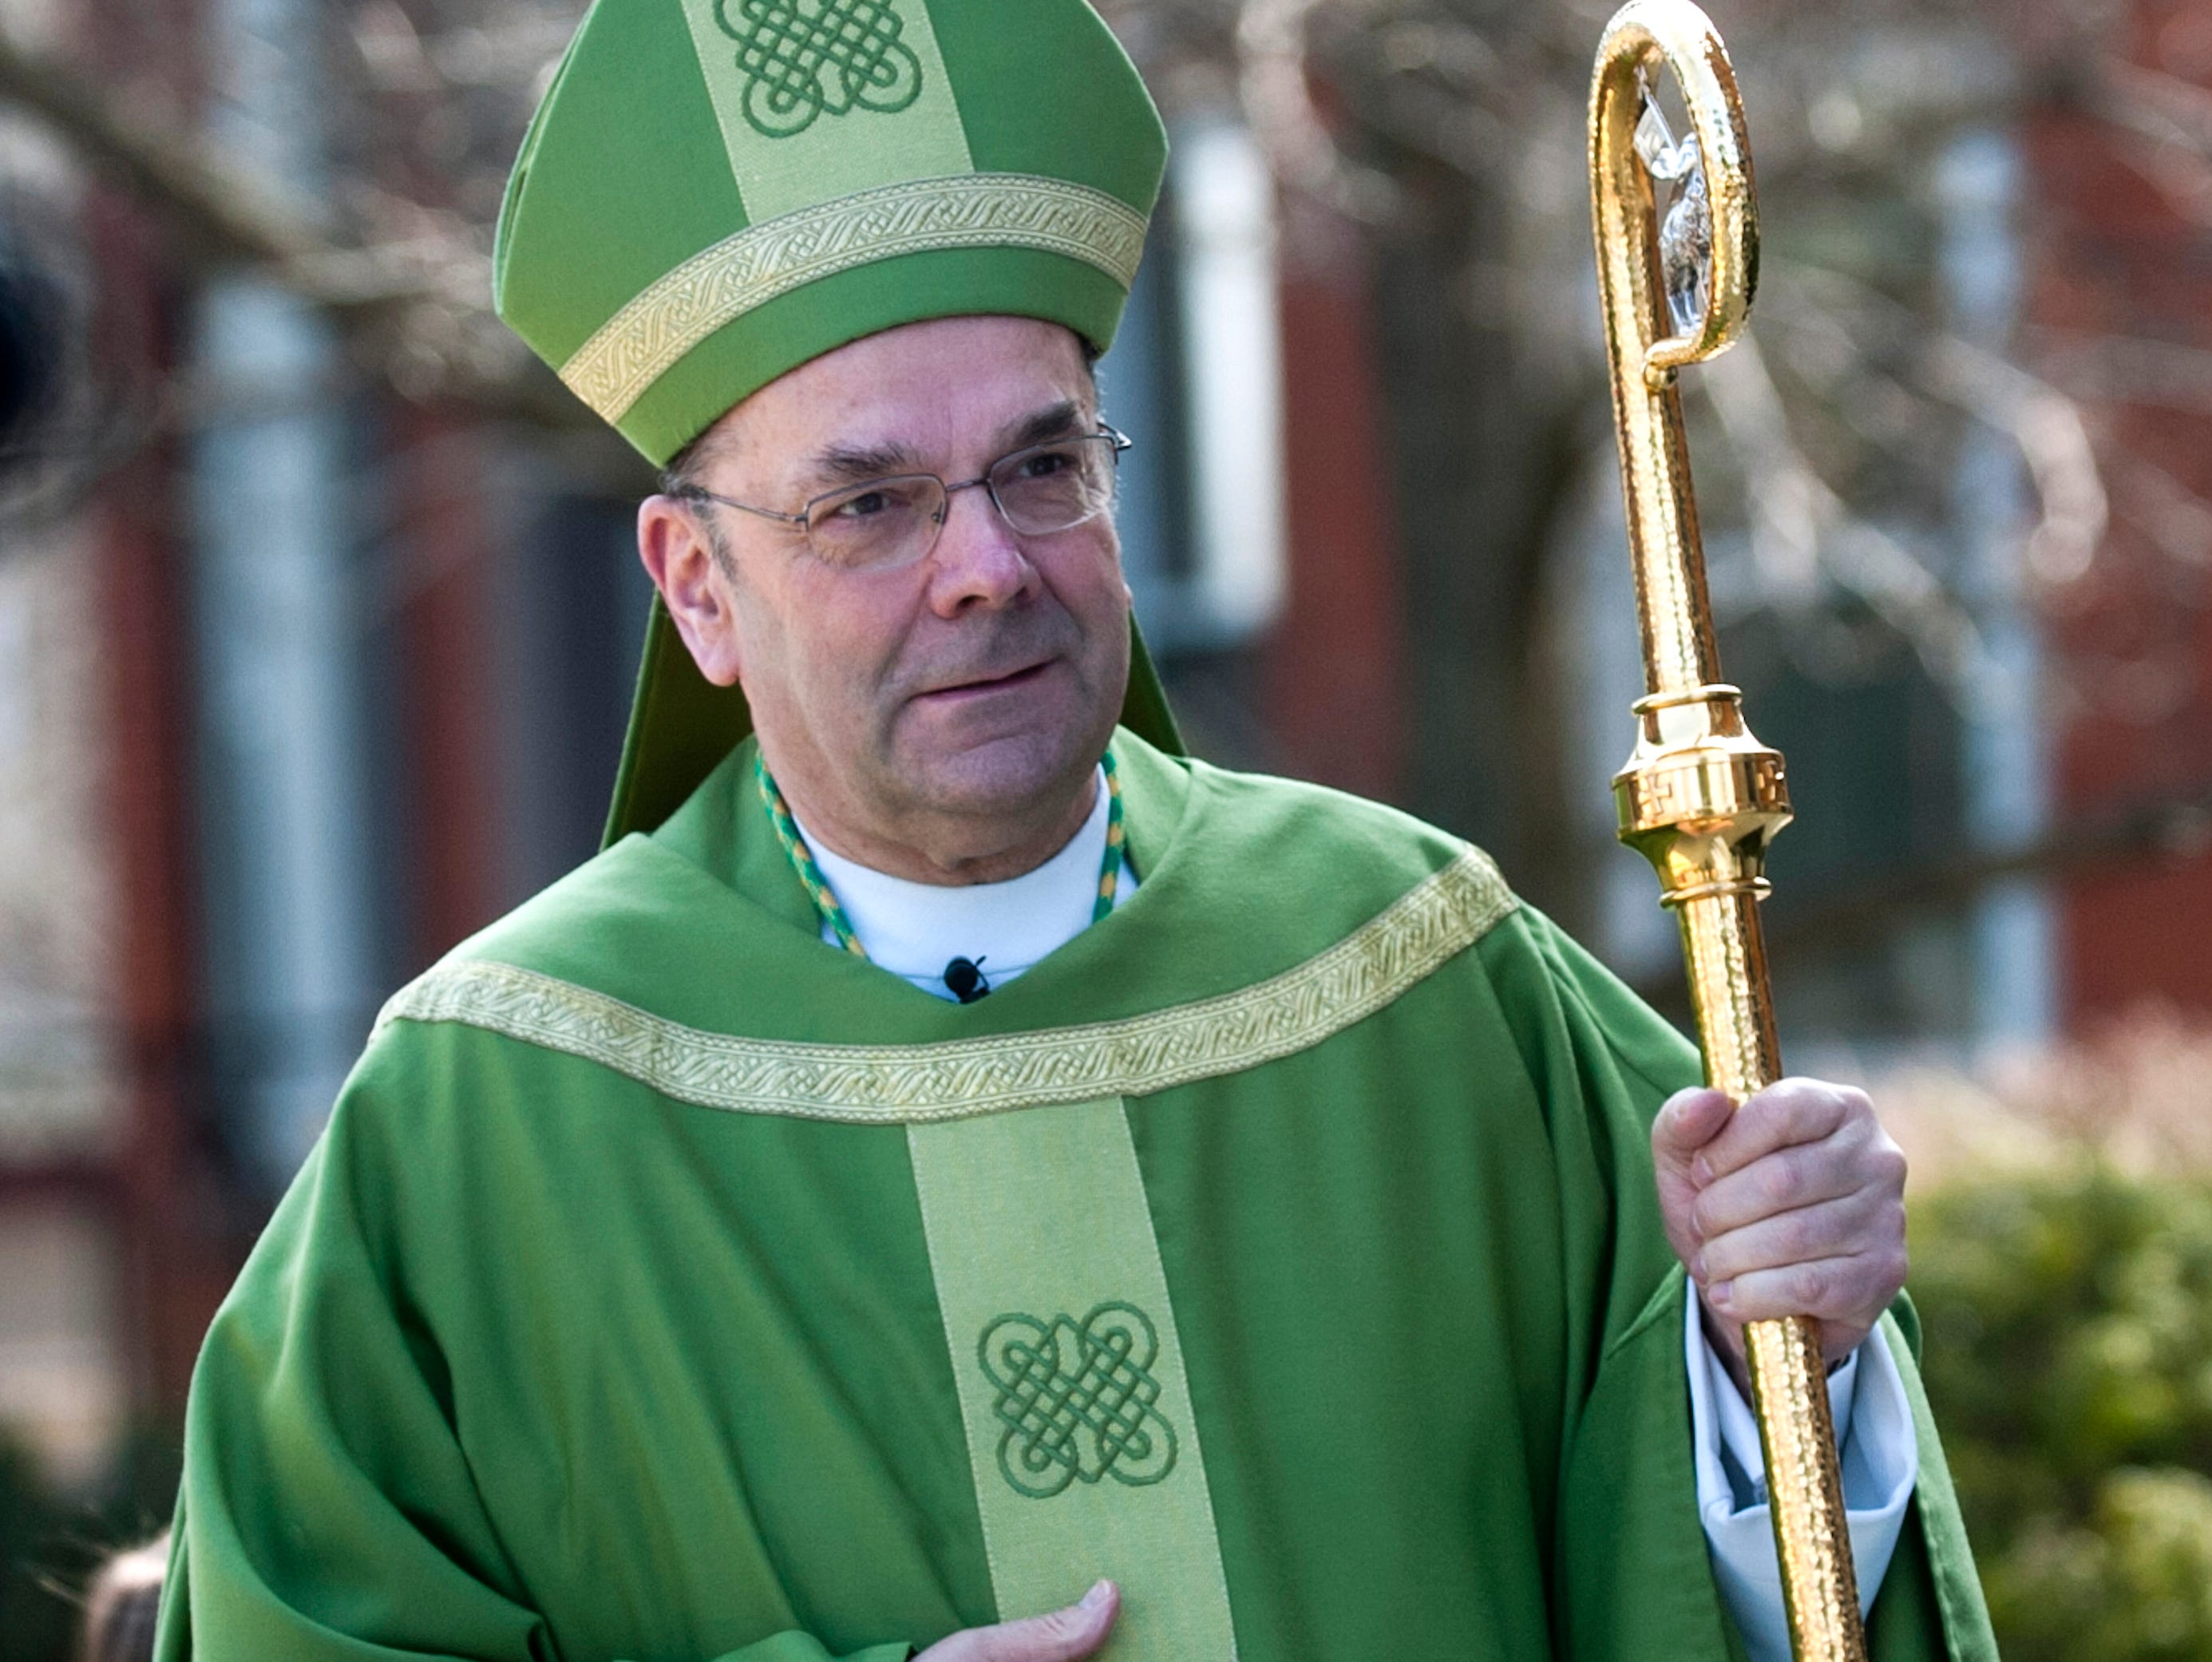 2011: Bishop Robert J. Cunningham, of the Syracuse diocese, enters St. Patrick Catholic Church on Leroy Street in Binghamton to lead a Thursday Mass in celebrations of St. Patrick's Day.